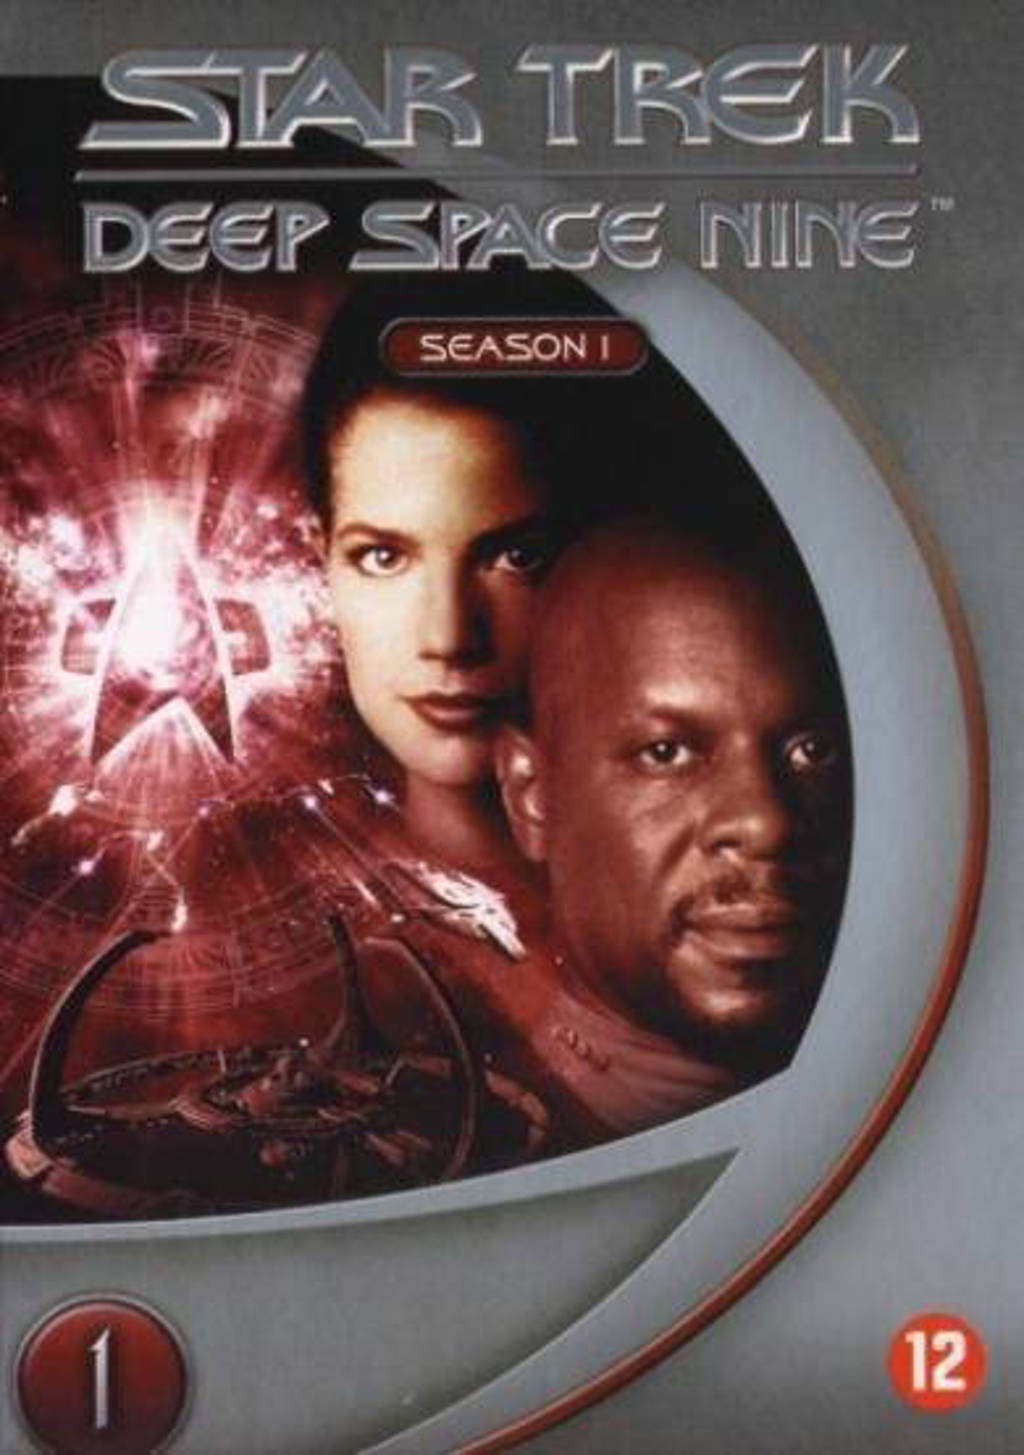 Star trek deep space nine - Seizoen 1 (DVD)